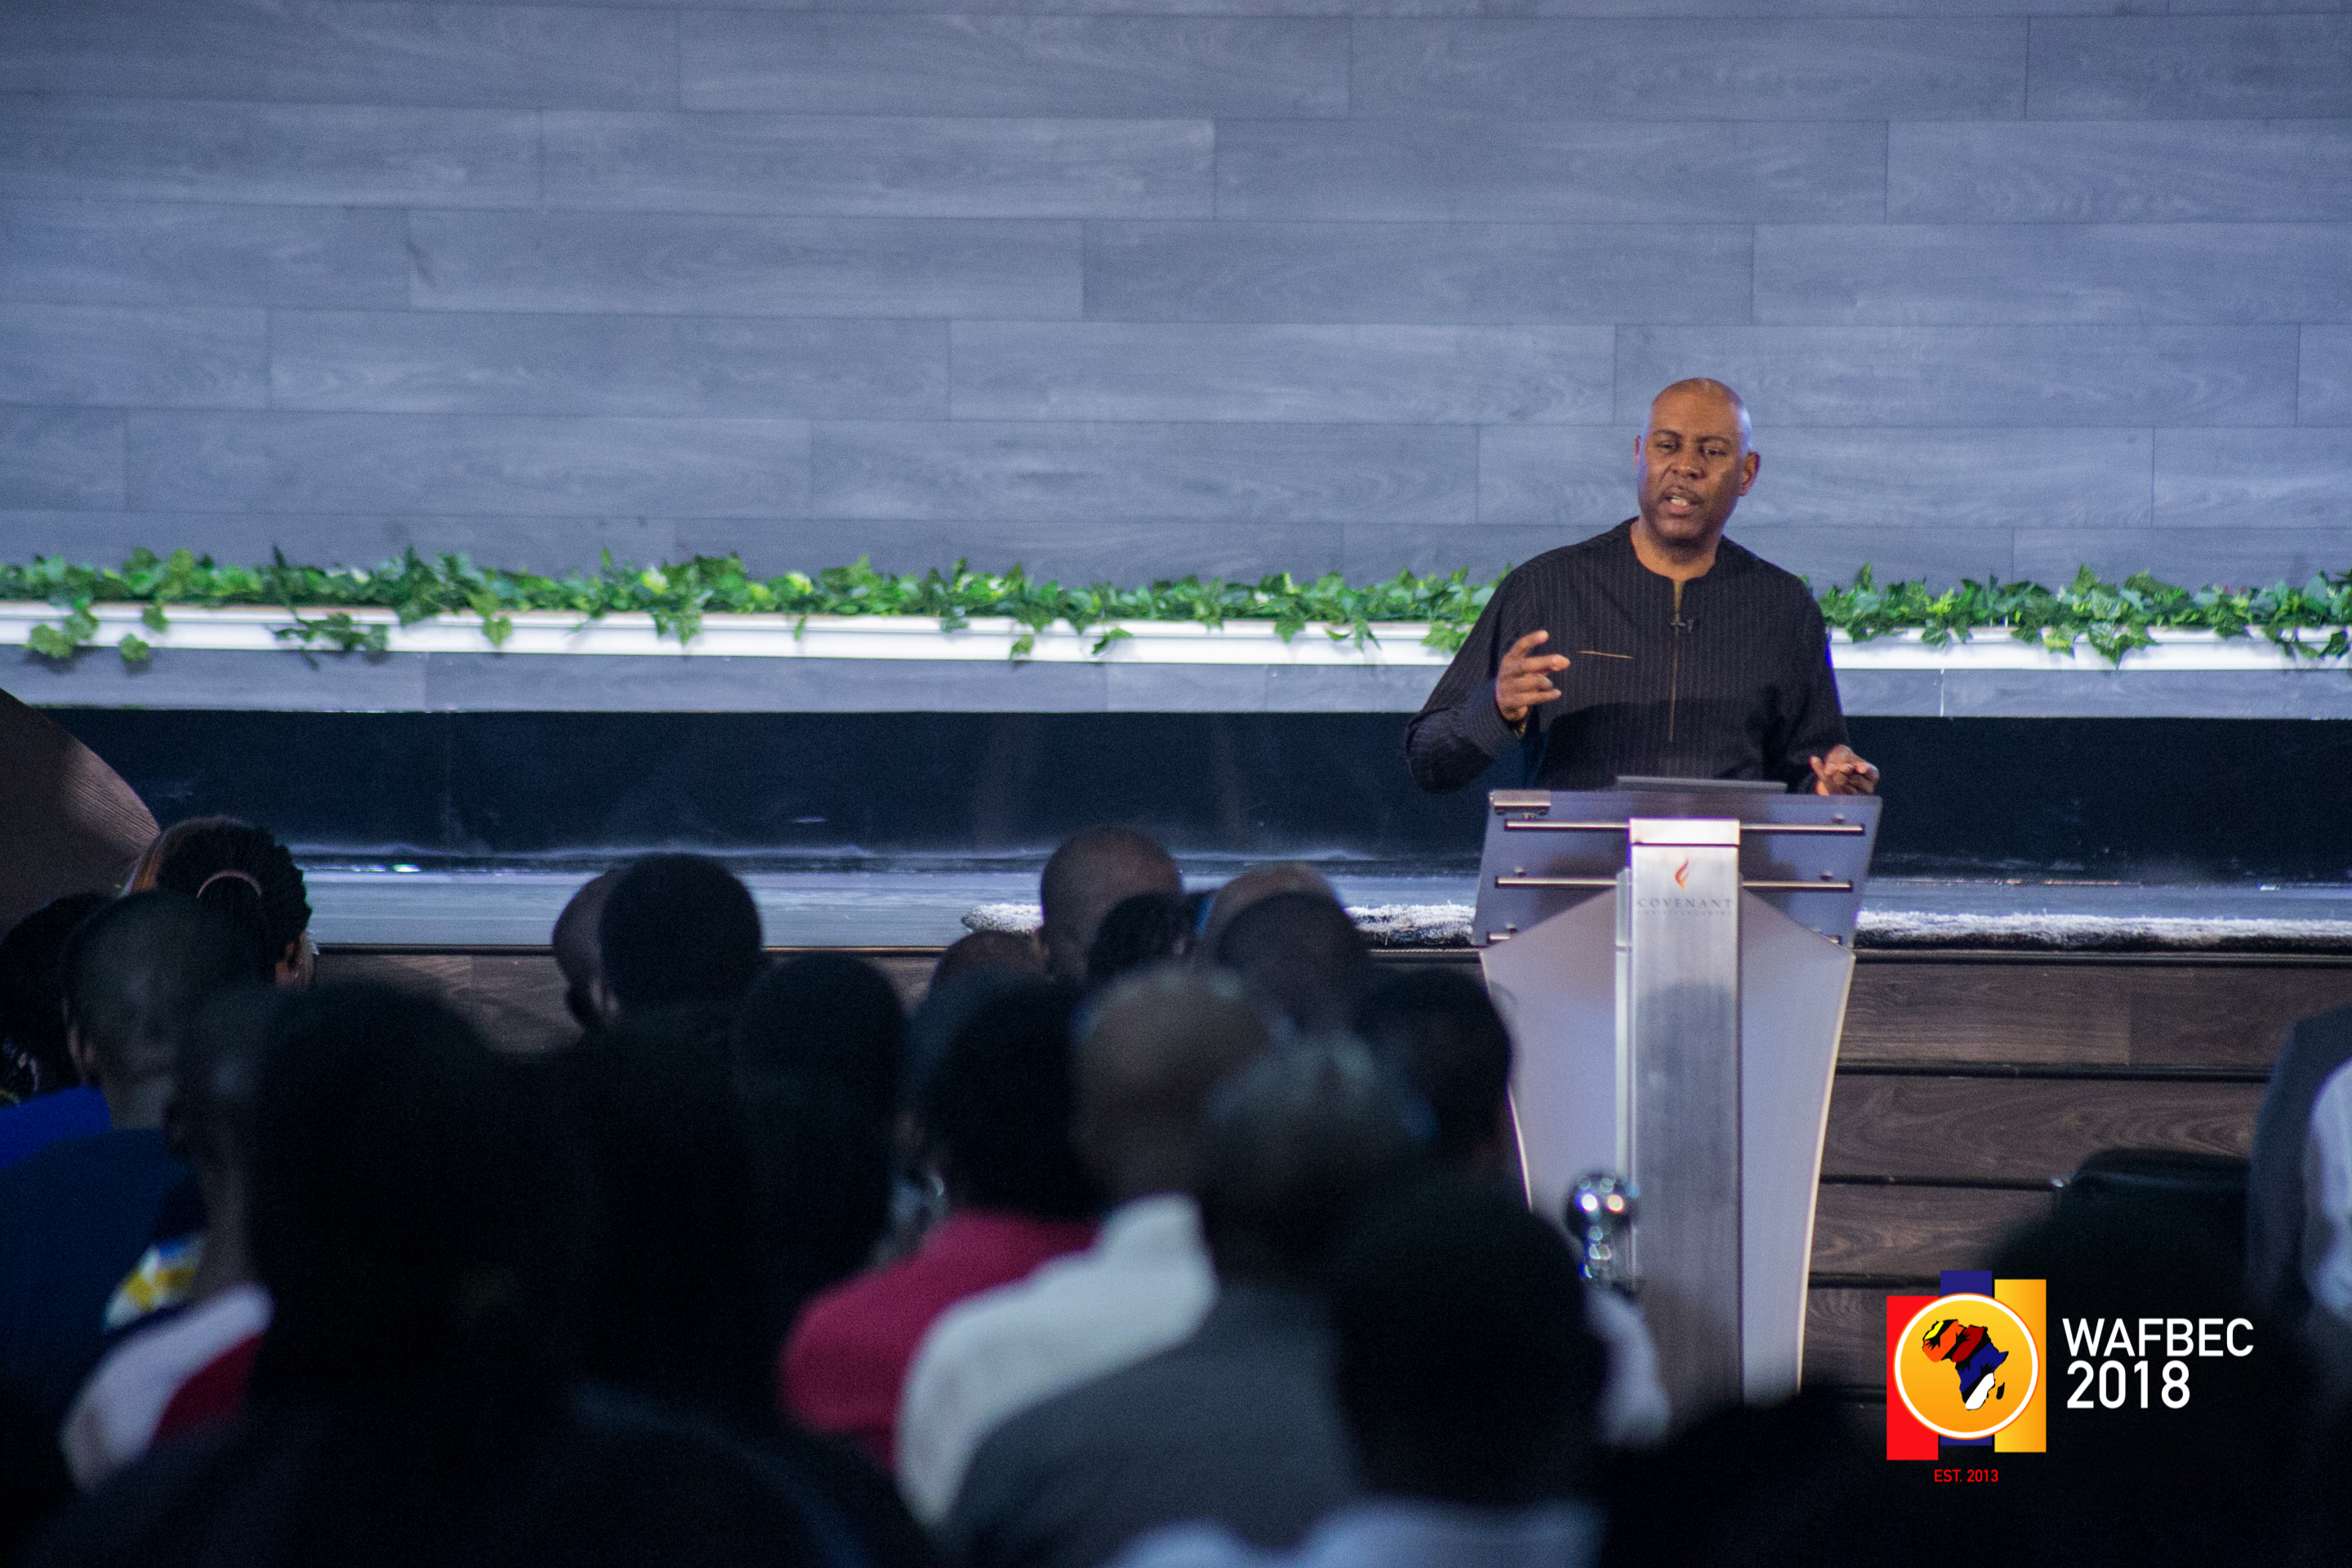 WAFBEC 2018 – DAY 8 (MORNING SESSION 2) with BISHOP KEITH BUTLER